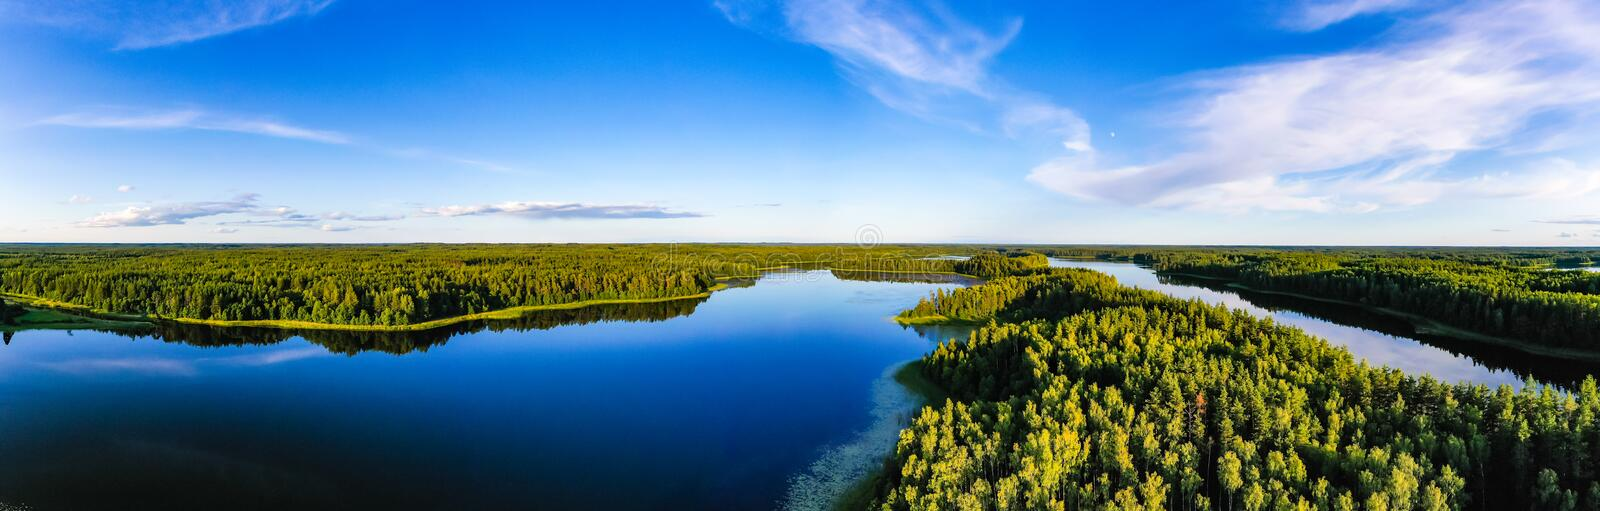 Blue lakes surrounded by green forest, panorama landscape. Ecology concept royalty free stock photography